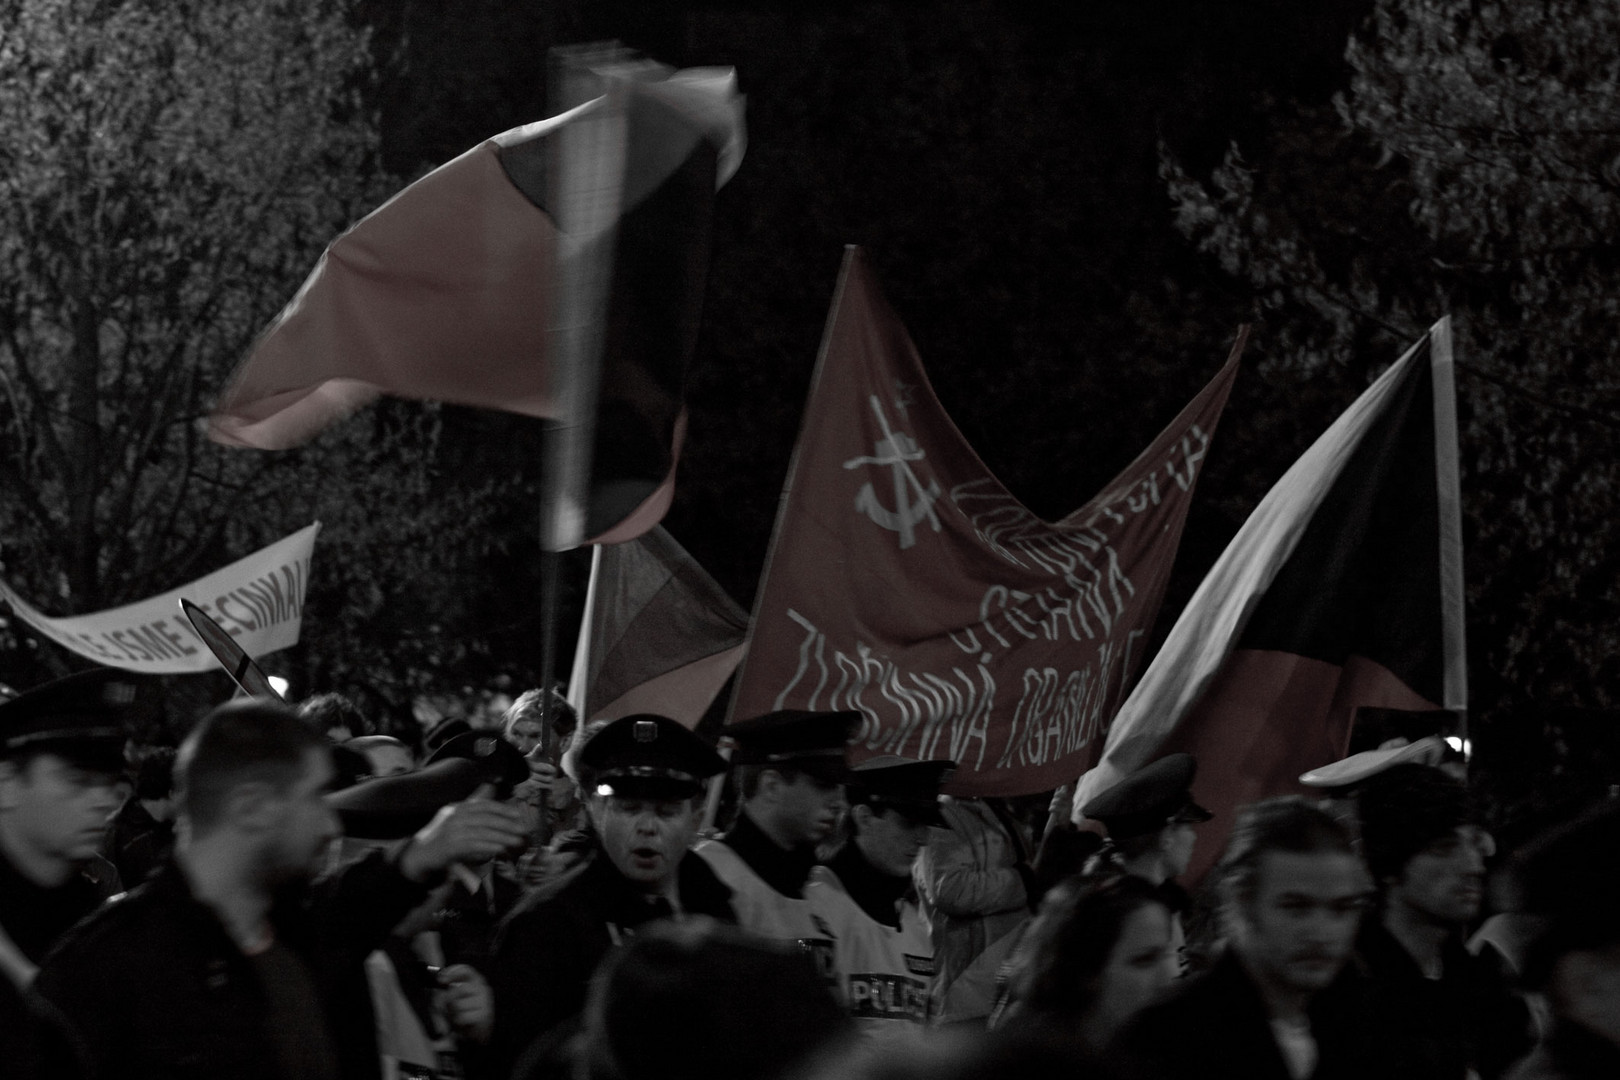 Praha velvet revolution commemoration day